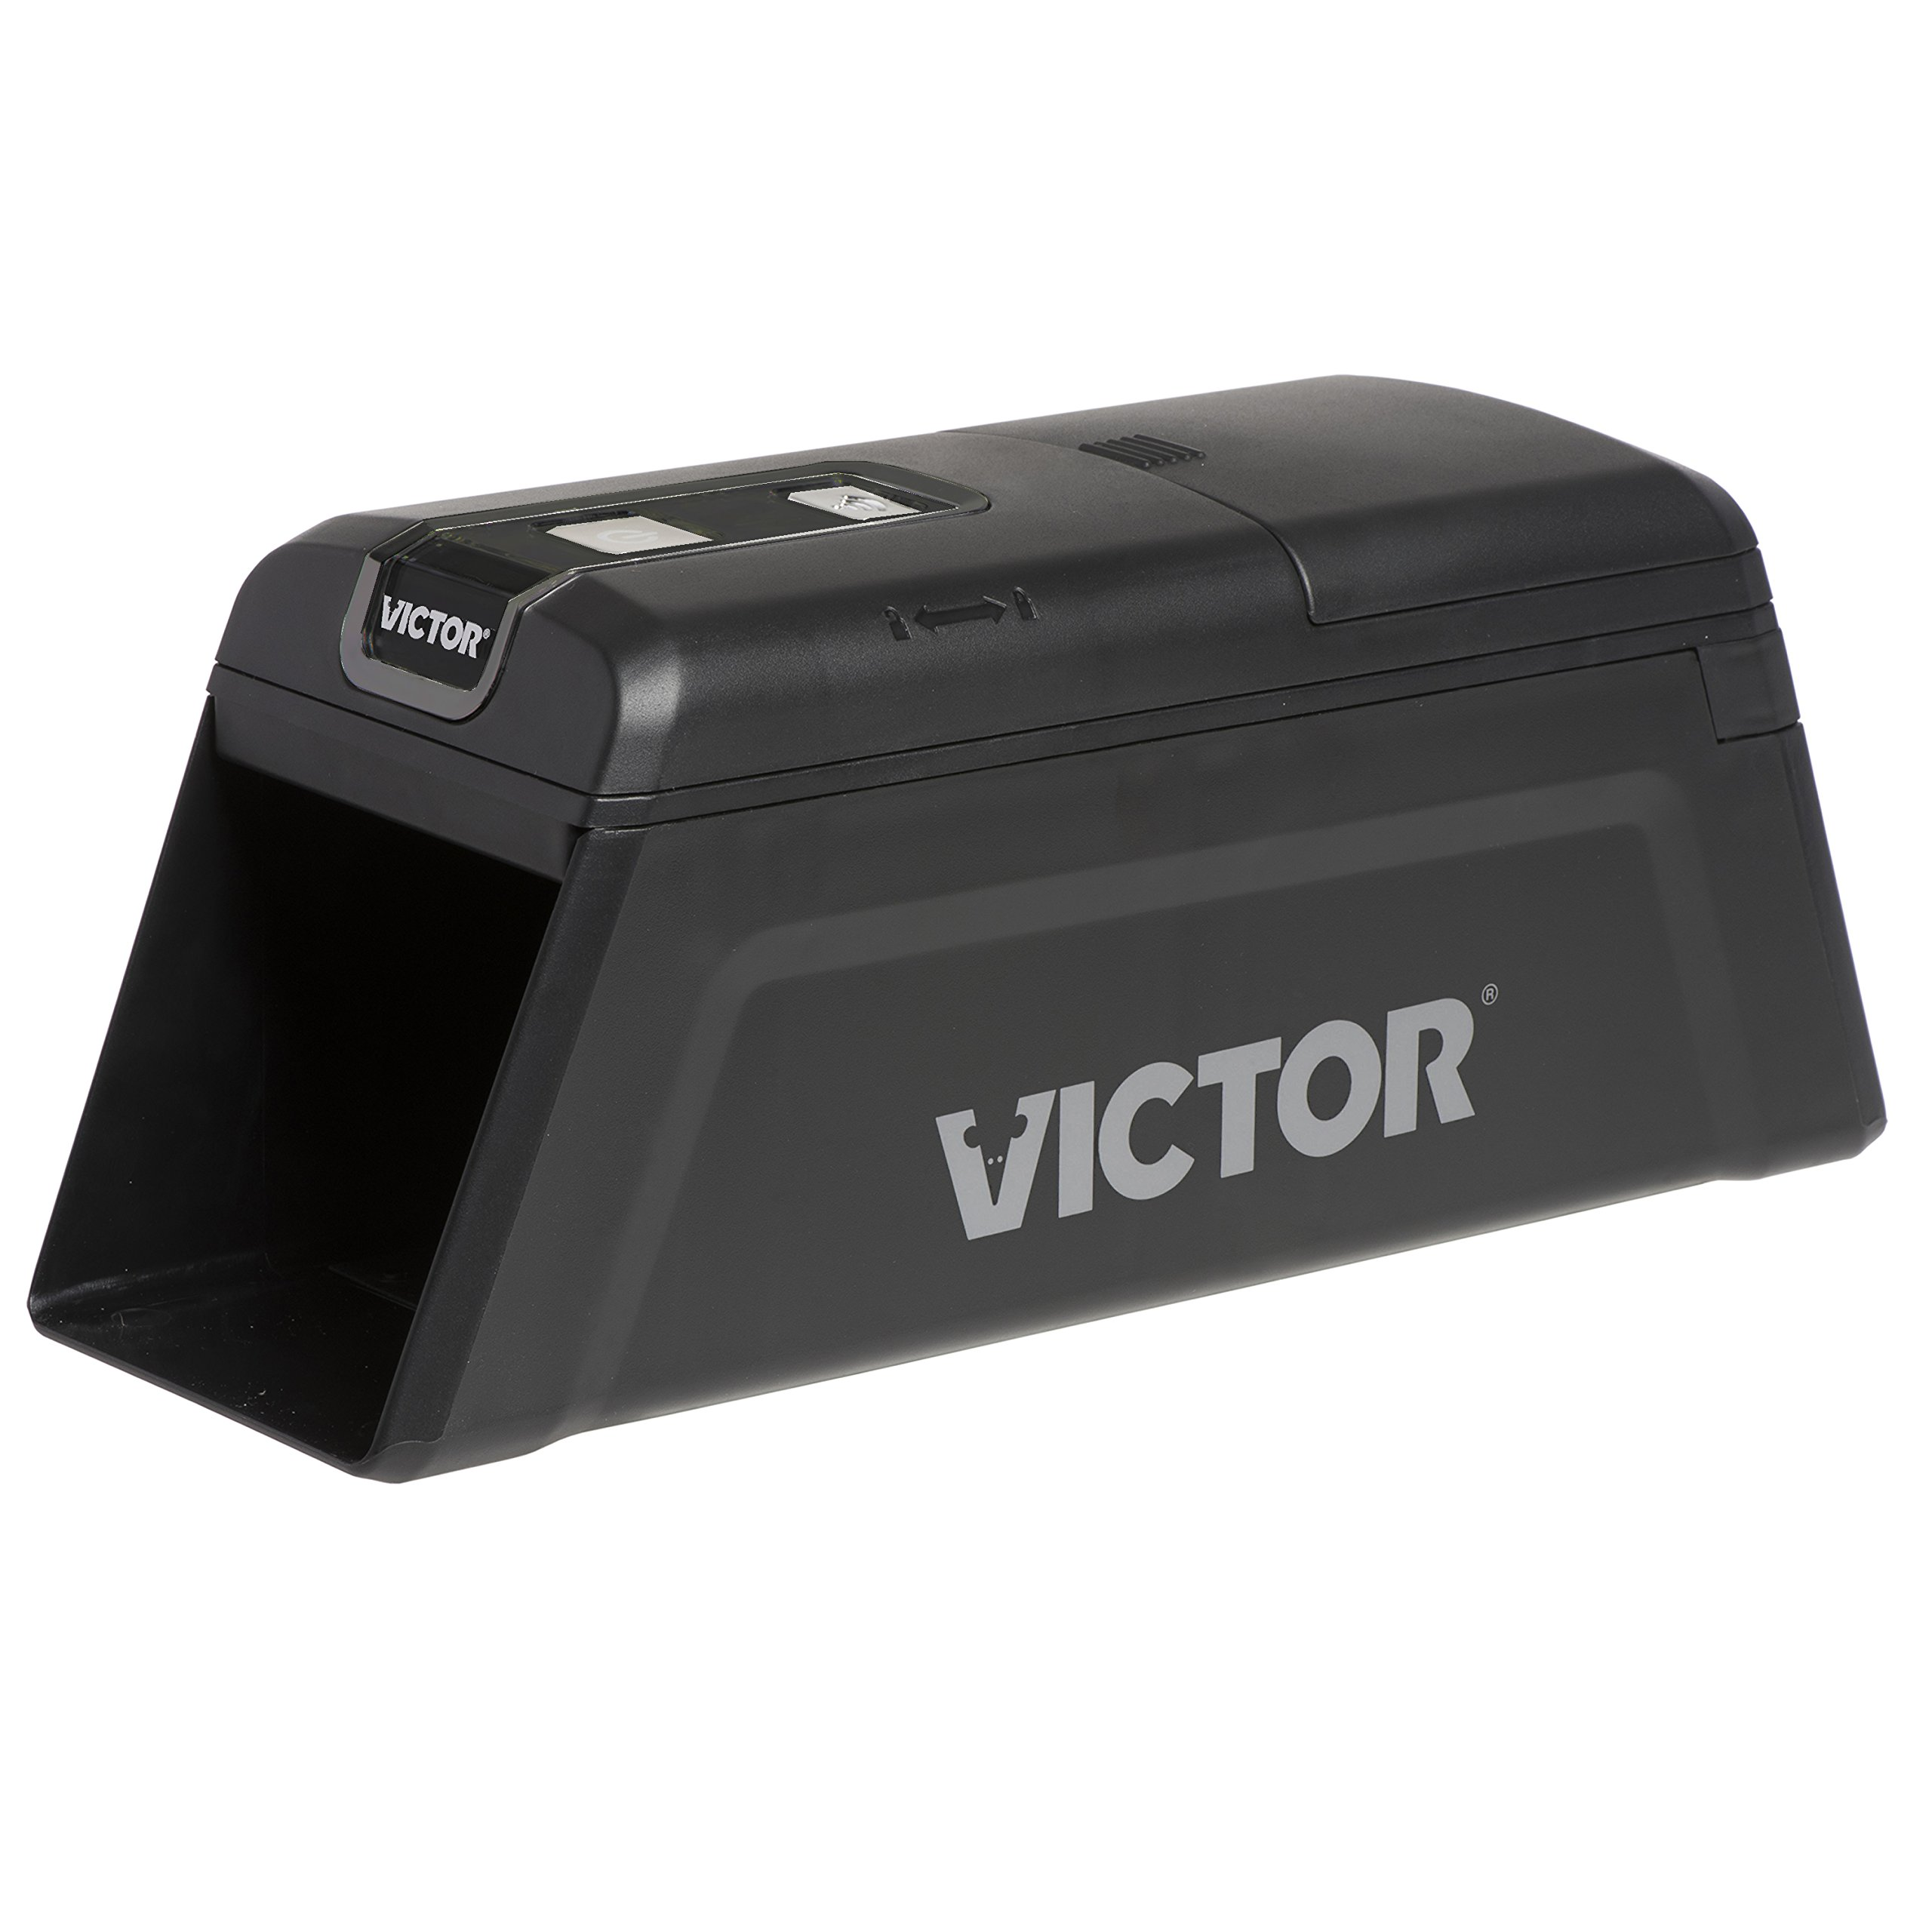 Victor M2 Smart-Kill Wi-Fi Electronic Rat Trap, 1 Pack, Black by Victor